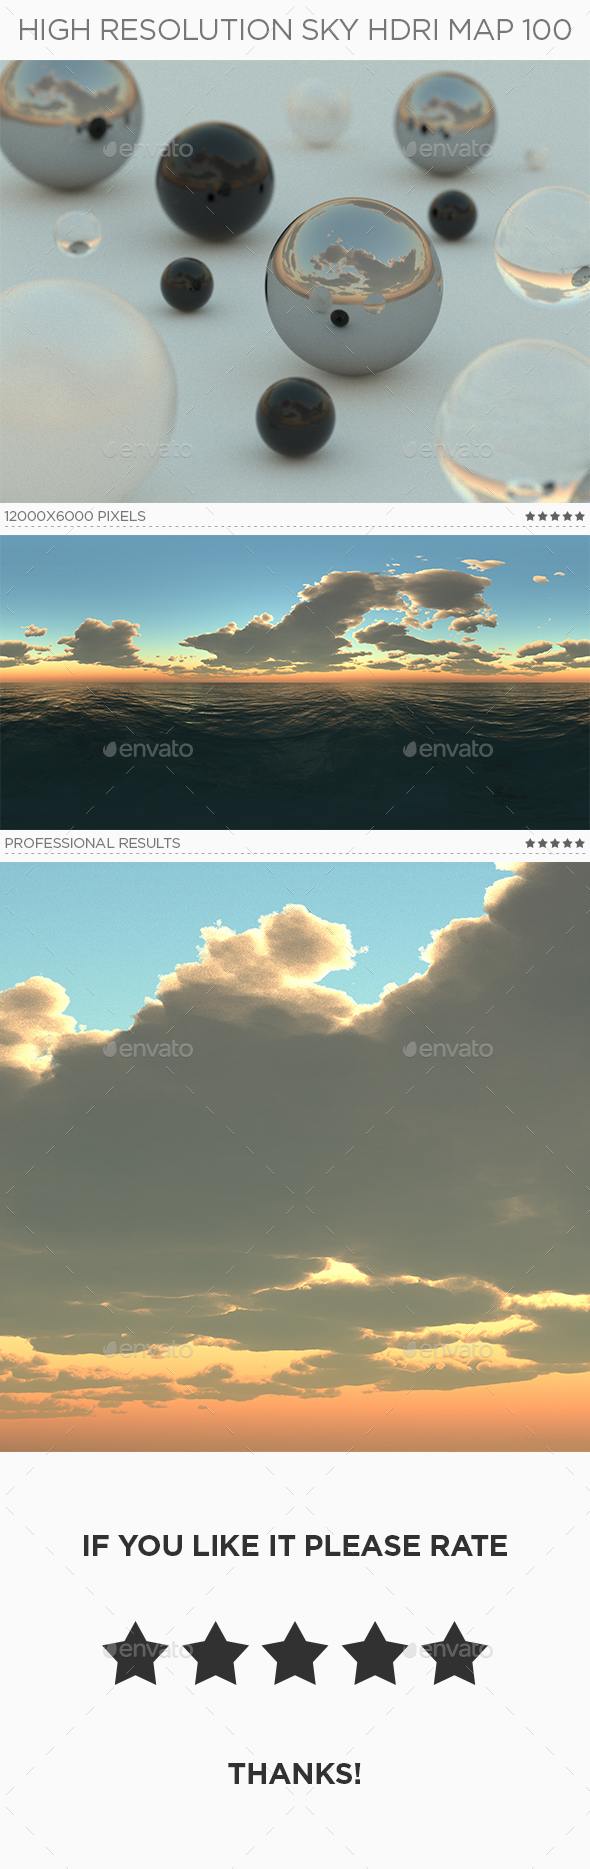 High Resolution Sky HDRi Map 100 - 3DOcean Item for Sale